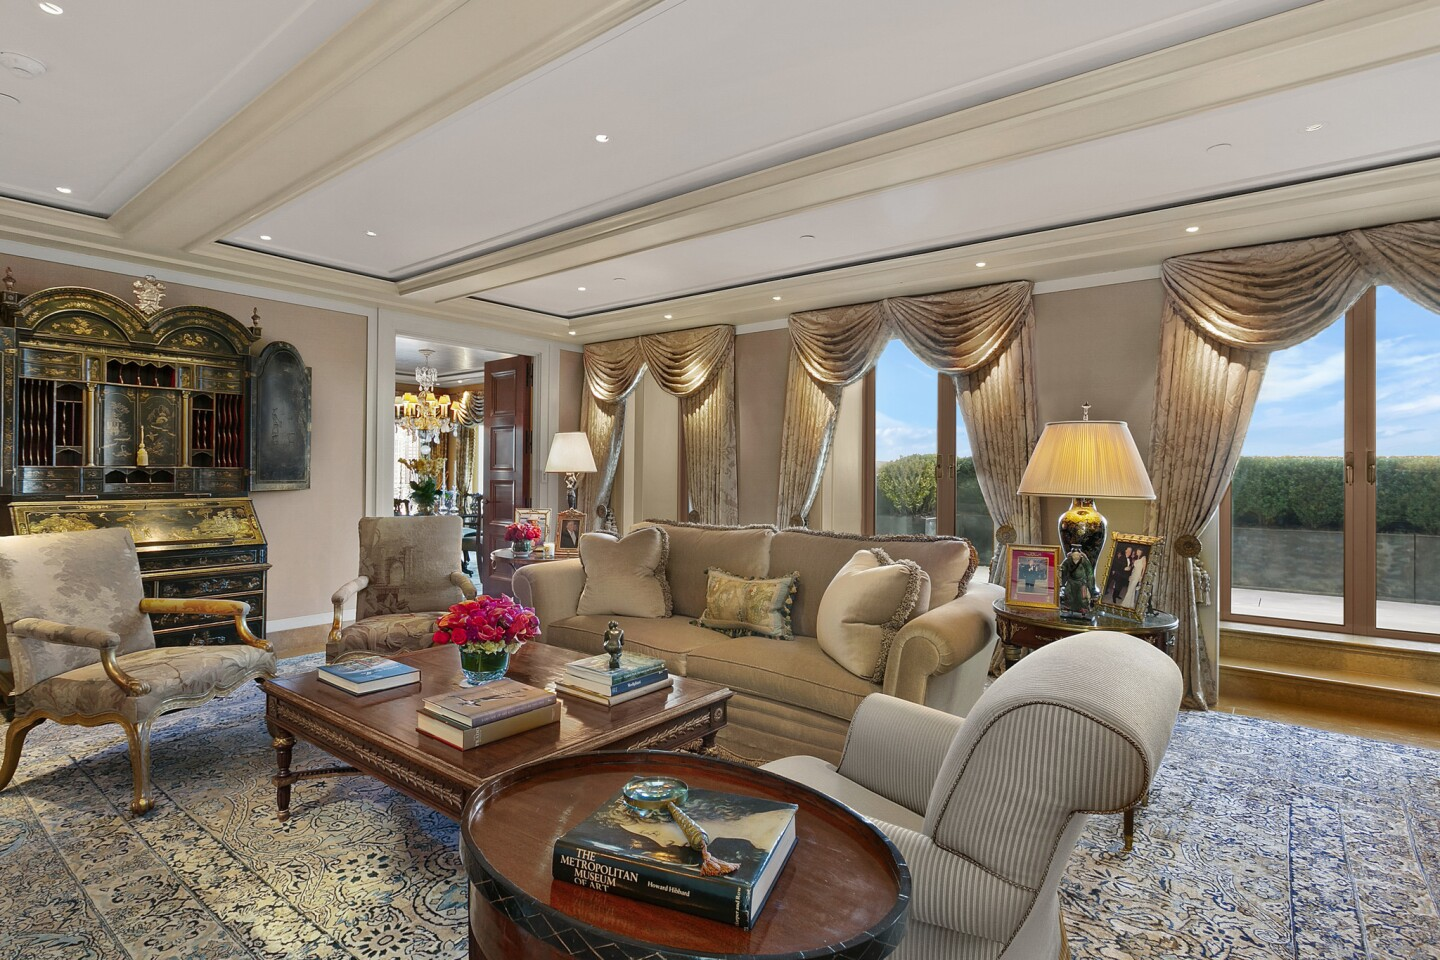 Sidney Kimmel's New York City apartment | Hot Property